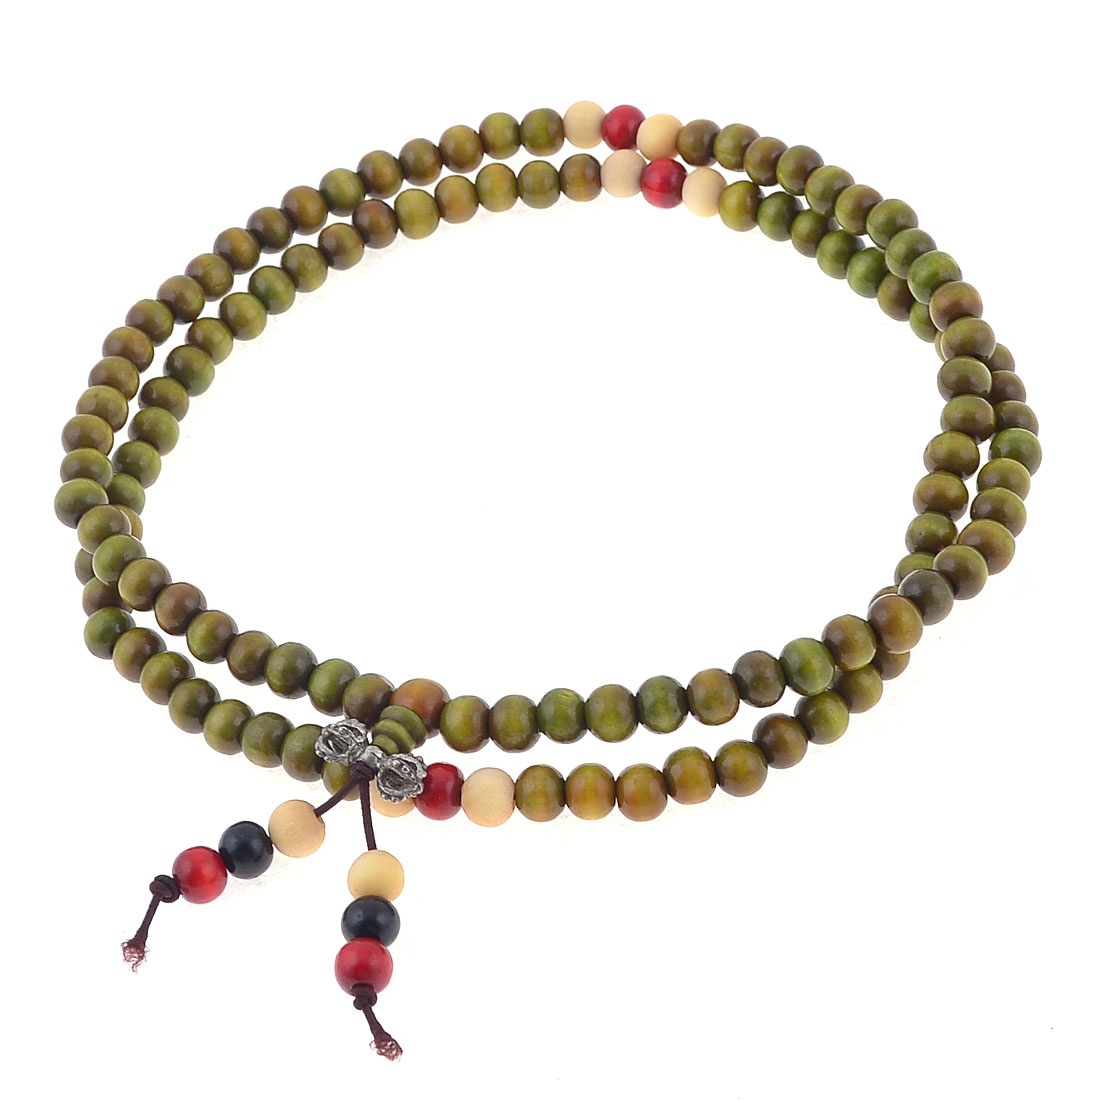 Olive Green Round Buddha Beads Elastic Bracelet Decor for Lovers